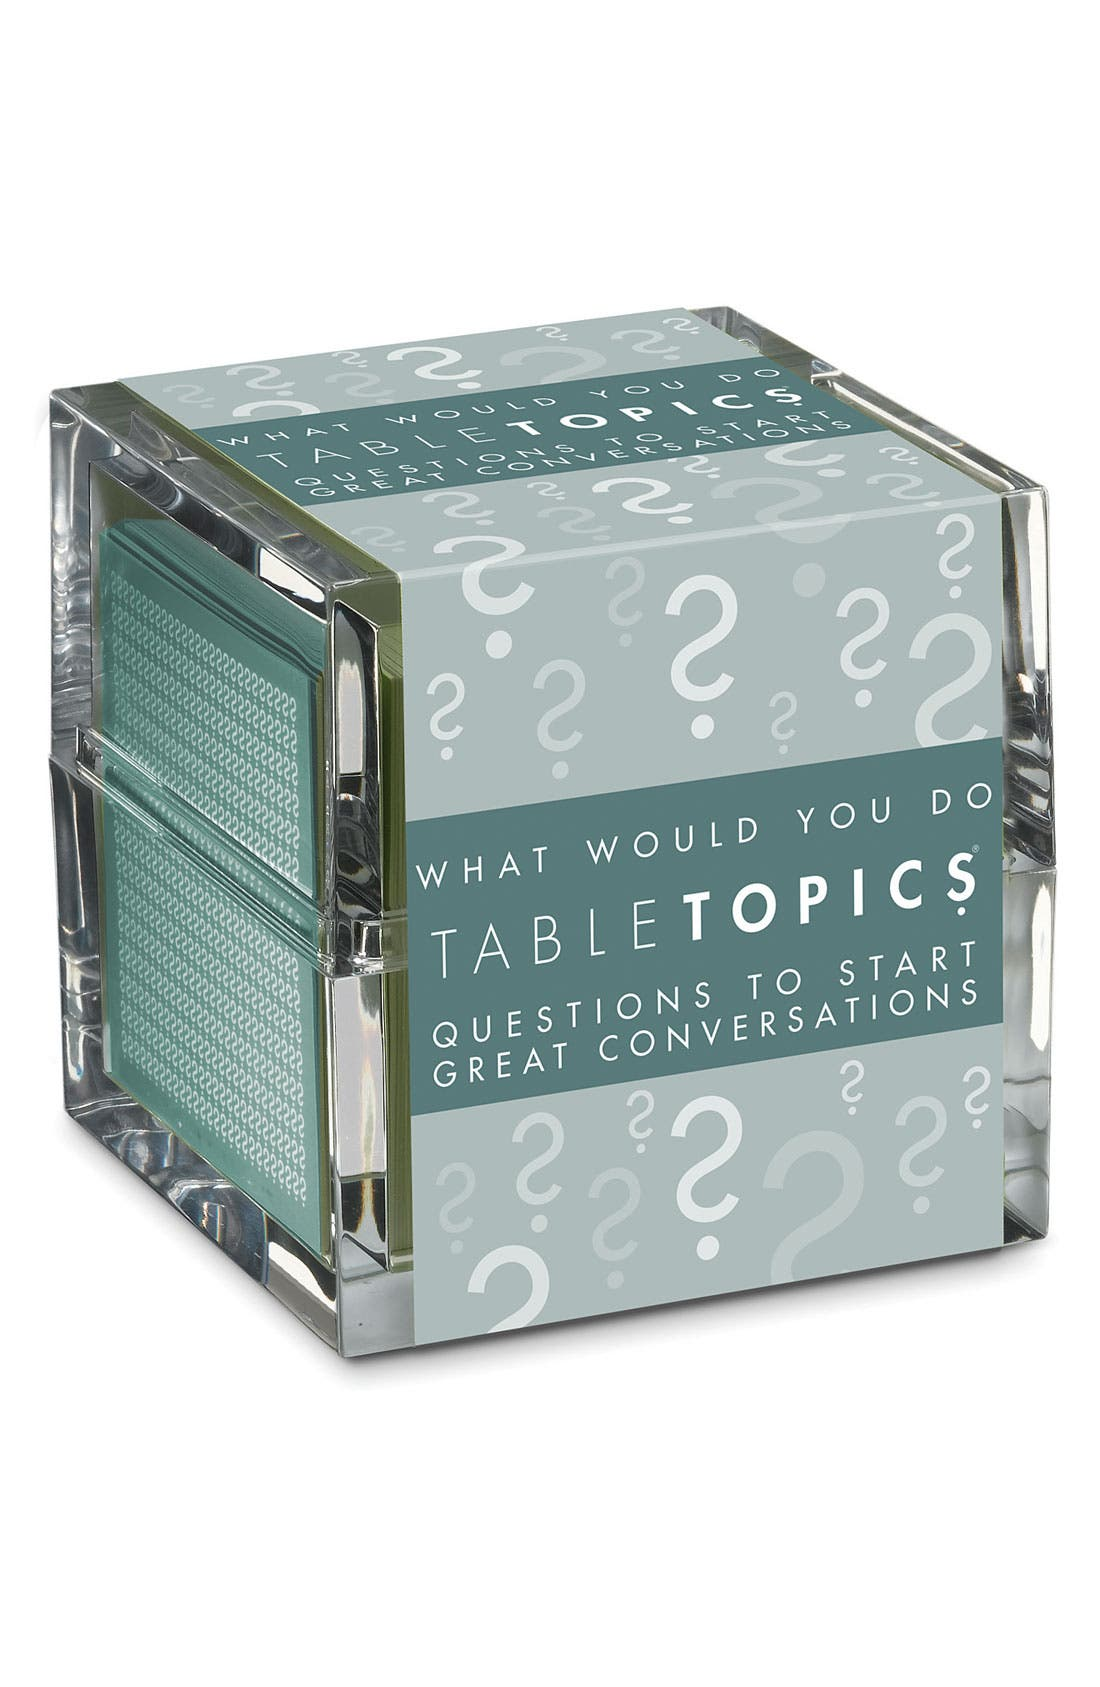 Alternate Image 1 Selected - TableTopics 'What Would You Do?' Conversation Starters